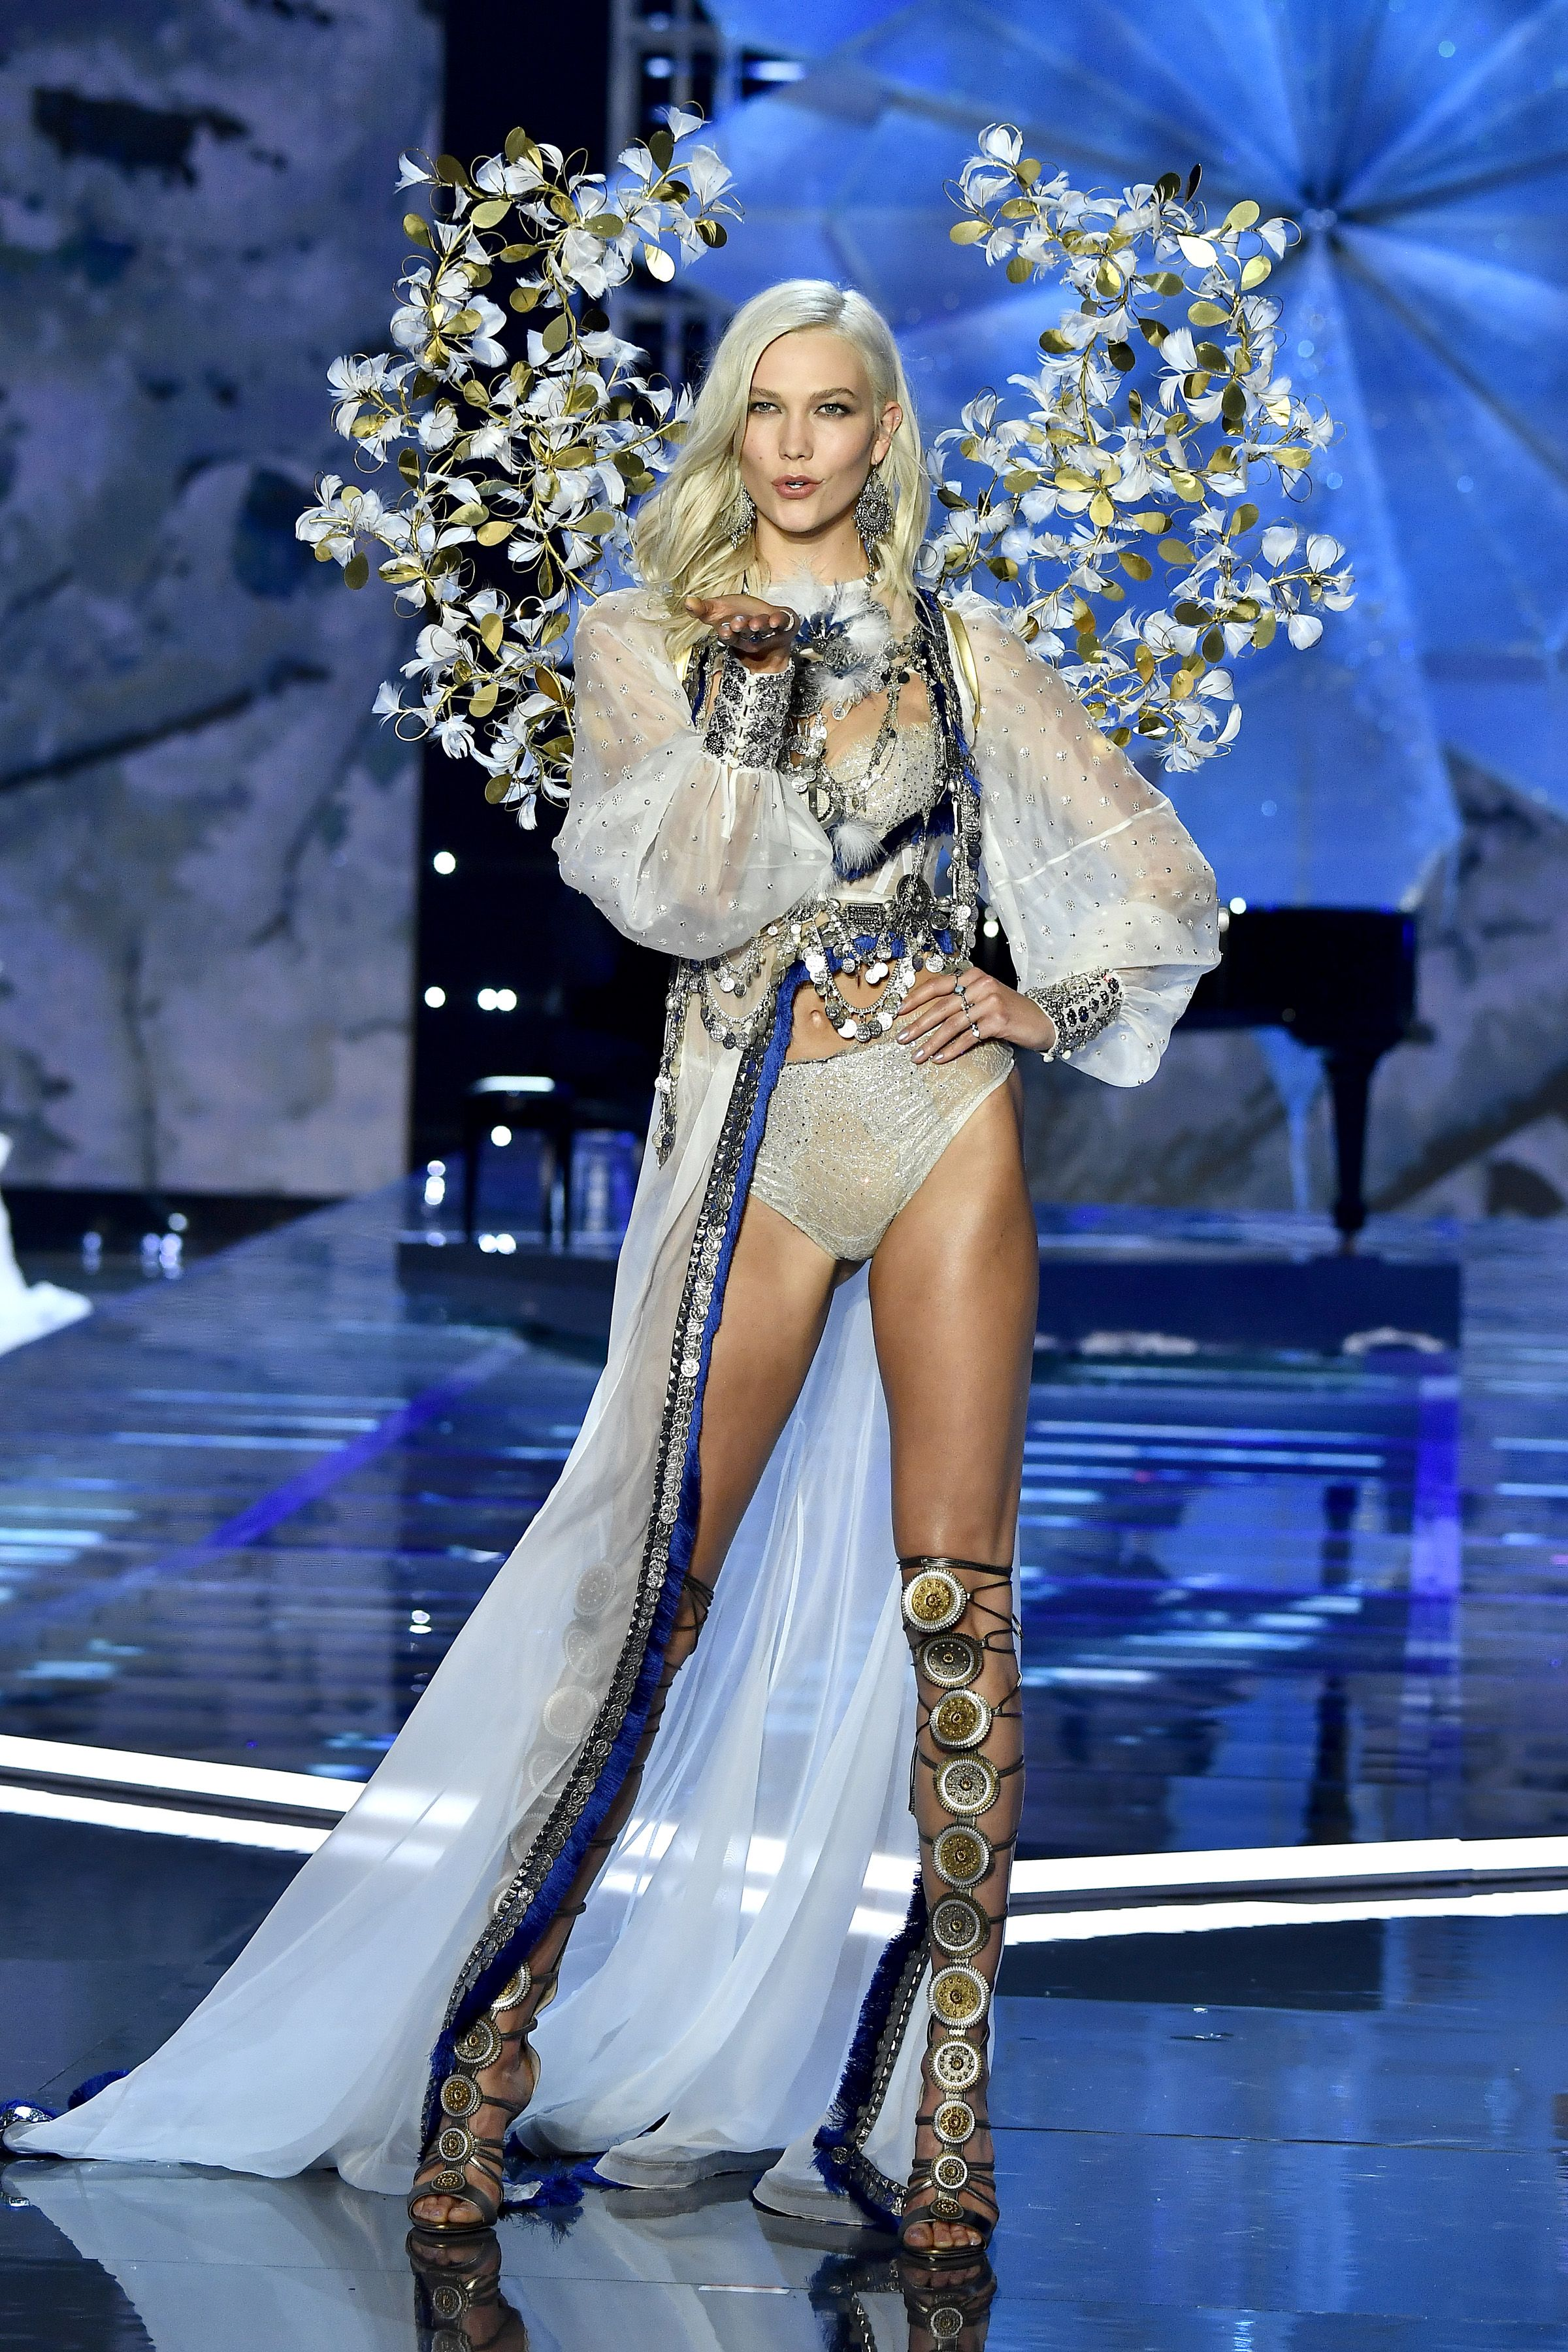 Karlie Kloss Kloss is a supermodel, entrepreneur, and philanthropist. She has worked with a variety of modeling agencies since she was 14 and is currently signed by IMG .